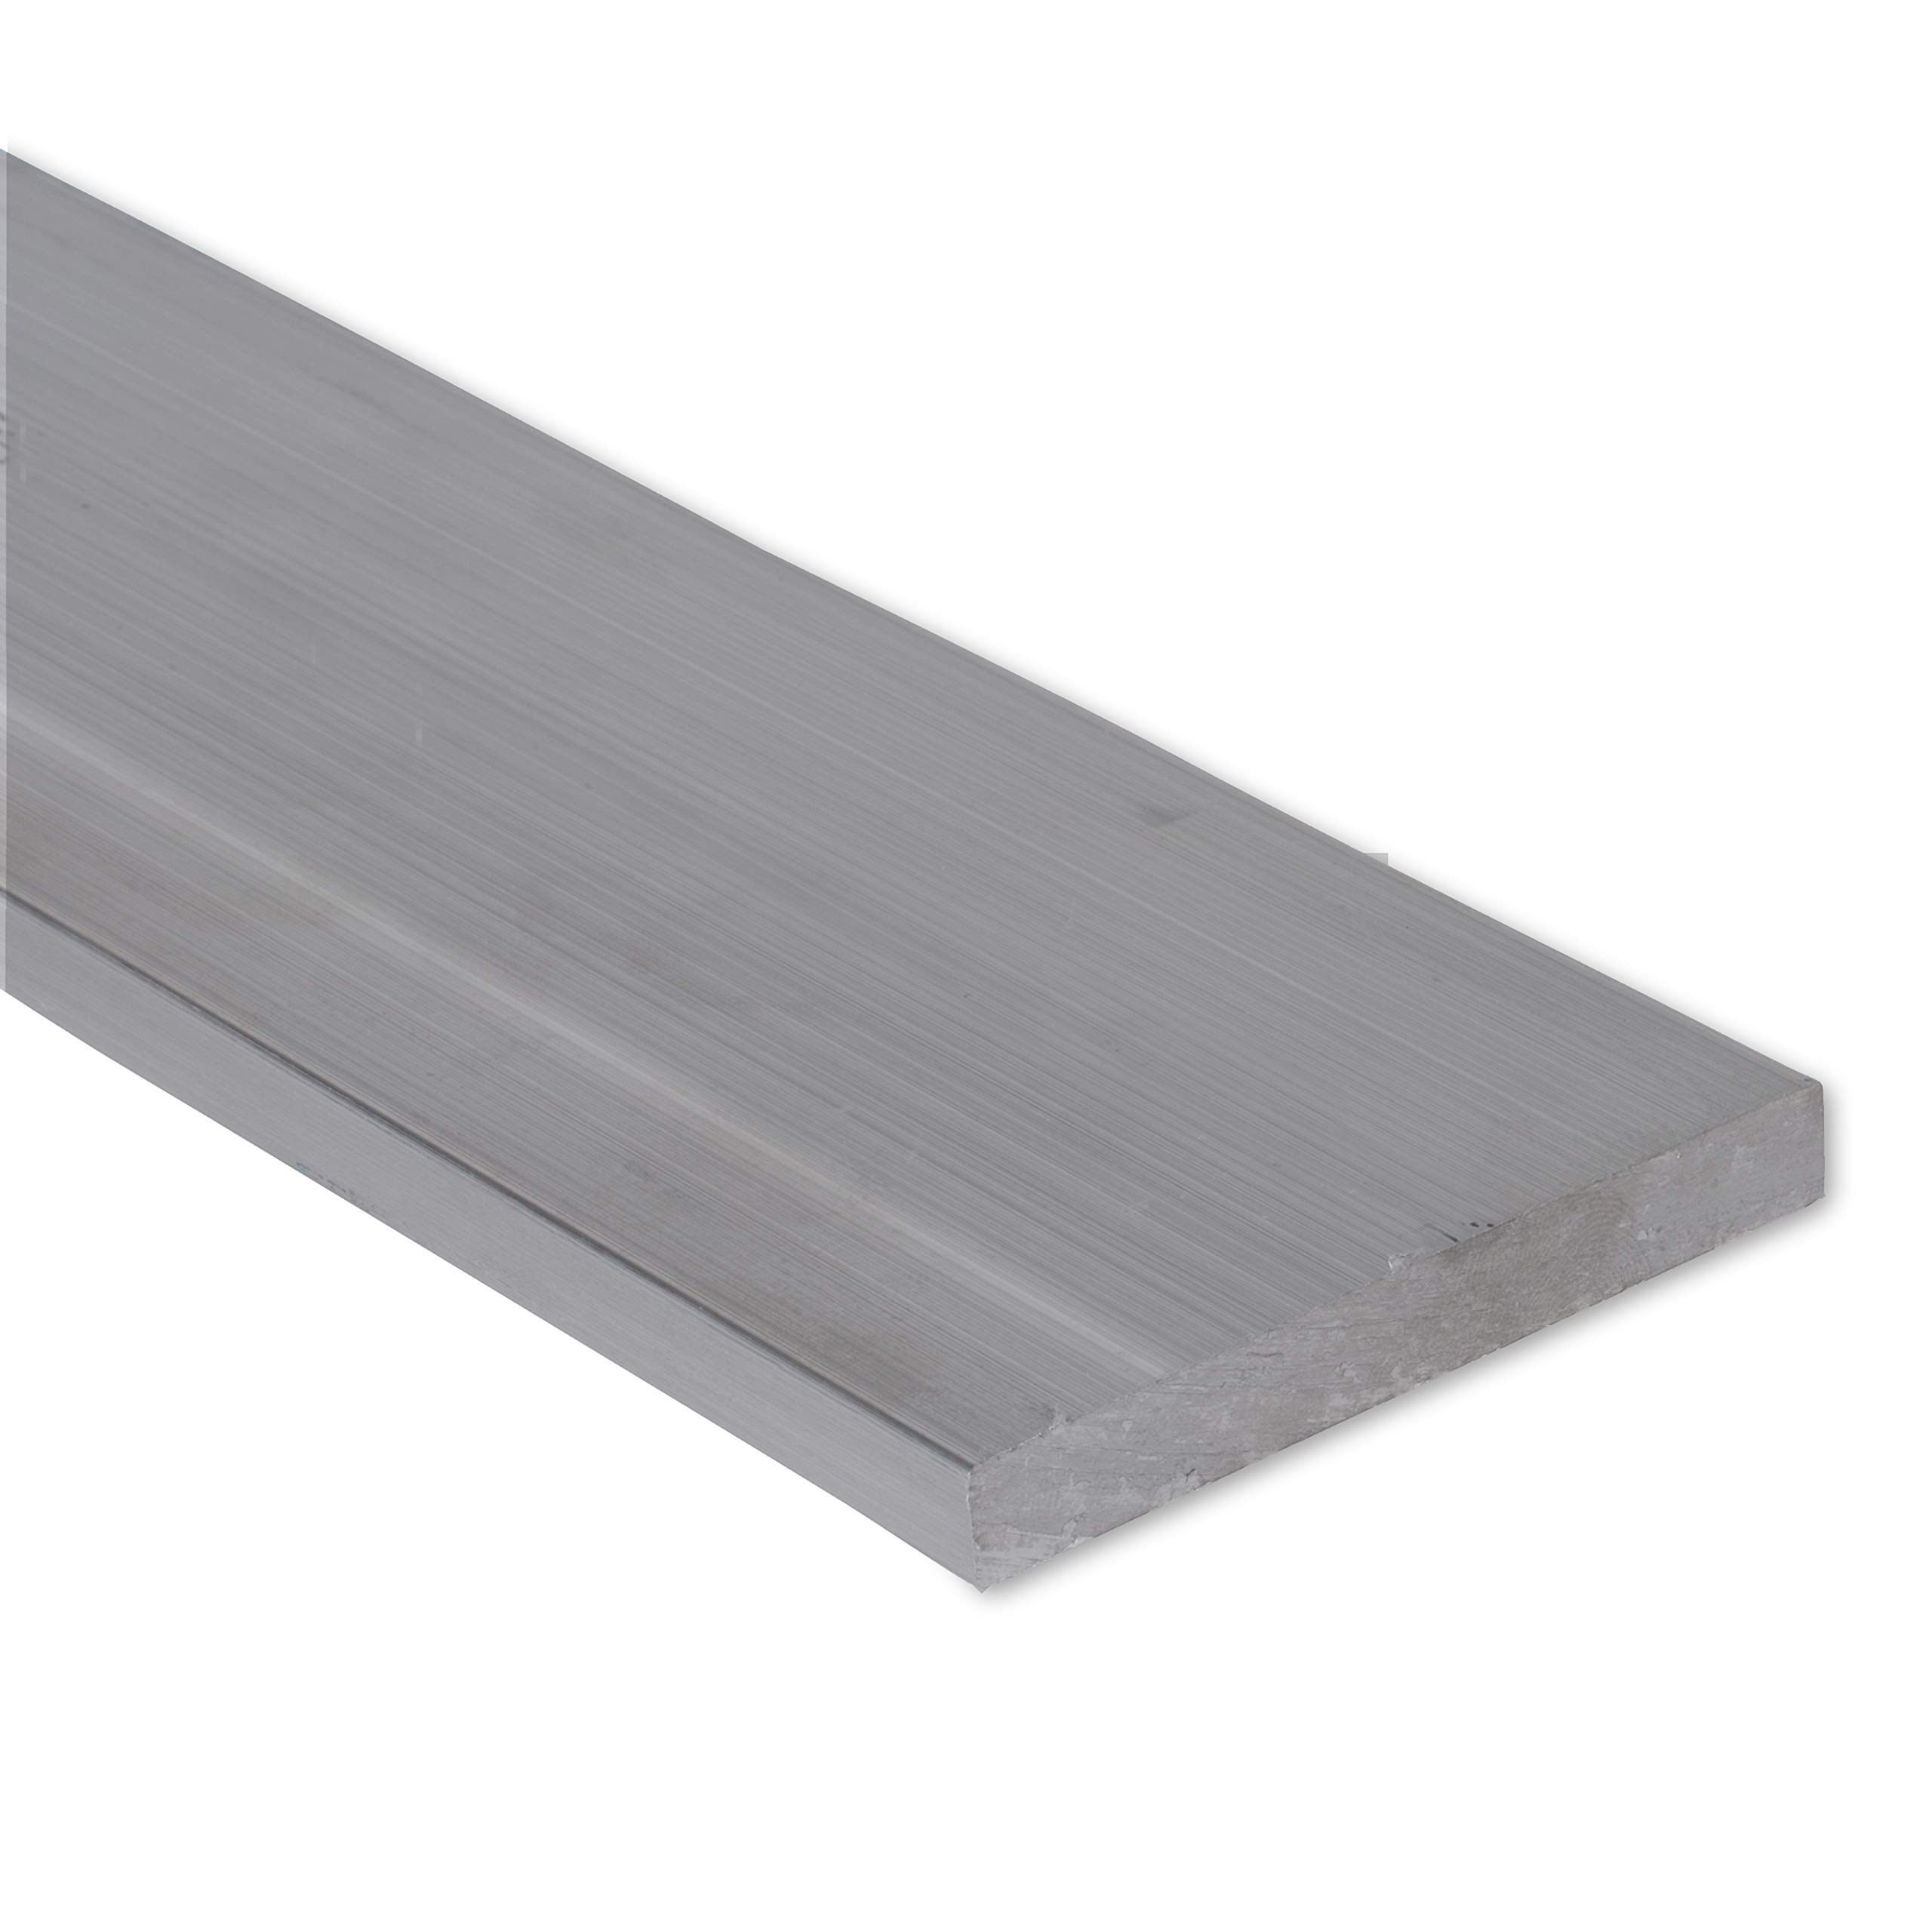 "1/2"" X 3"" Stainless Steel Flat Bar, 304 General"